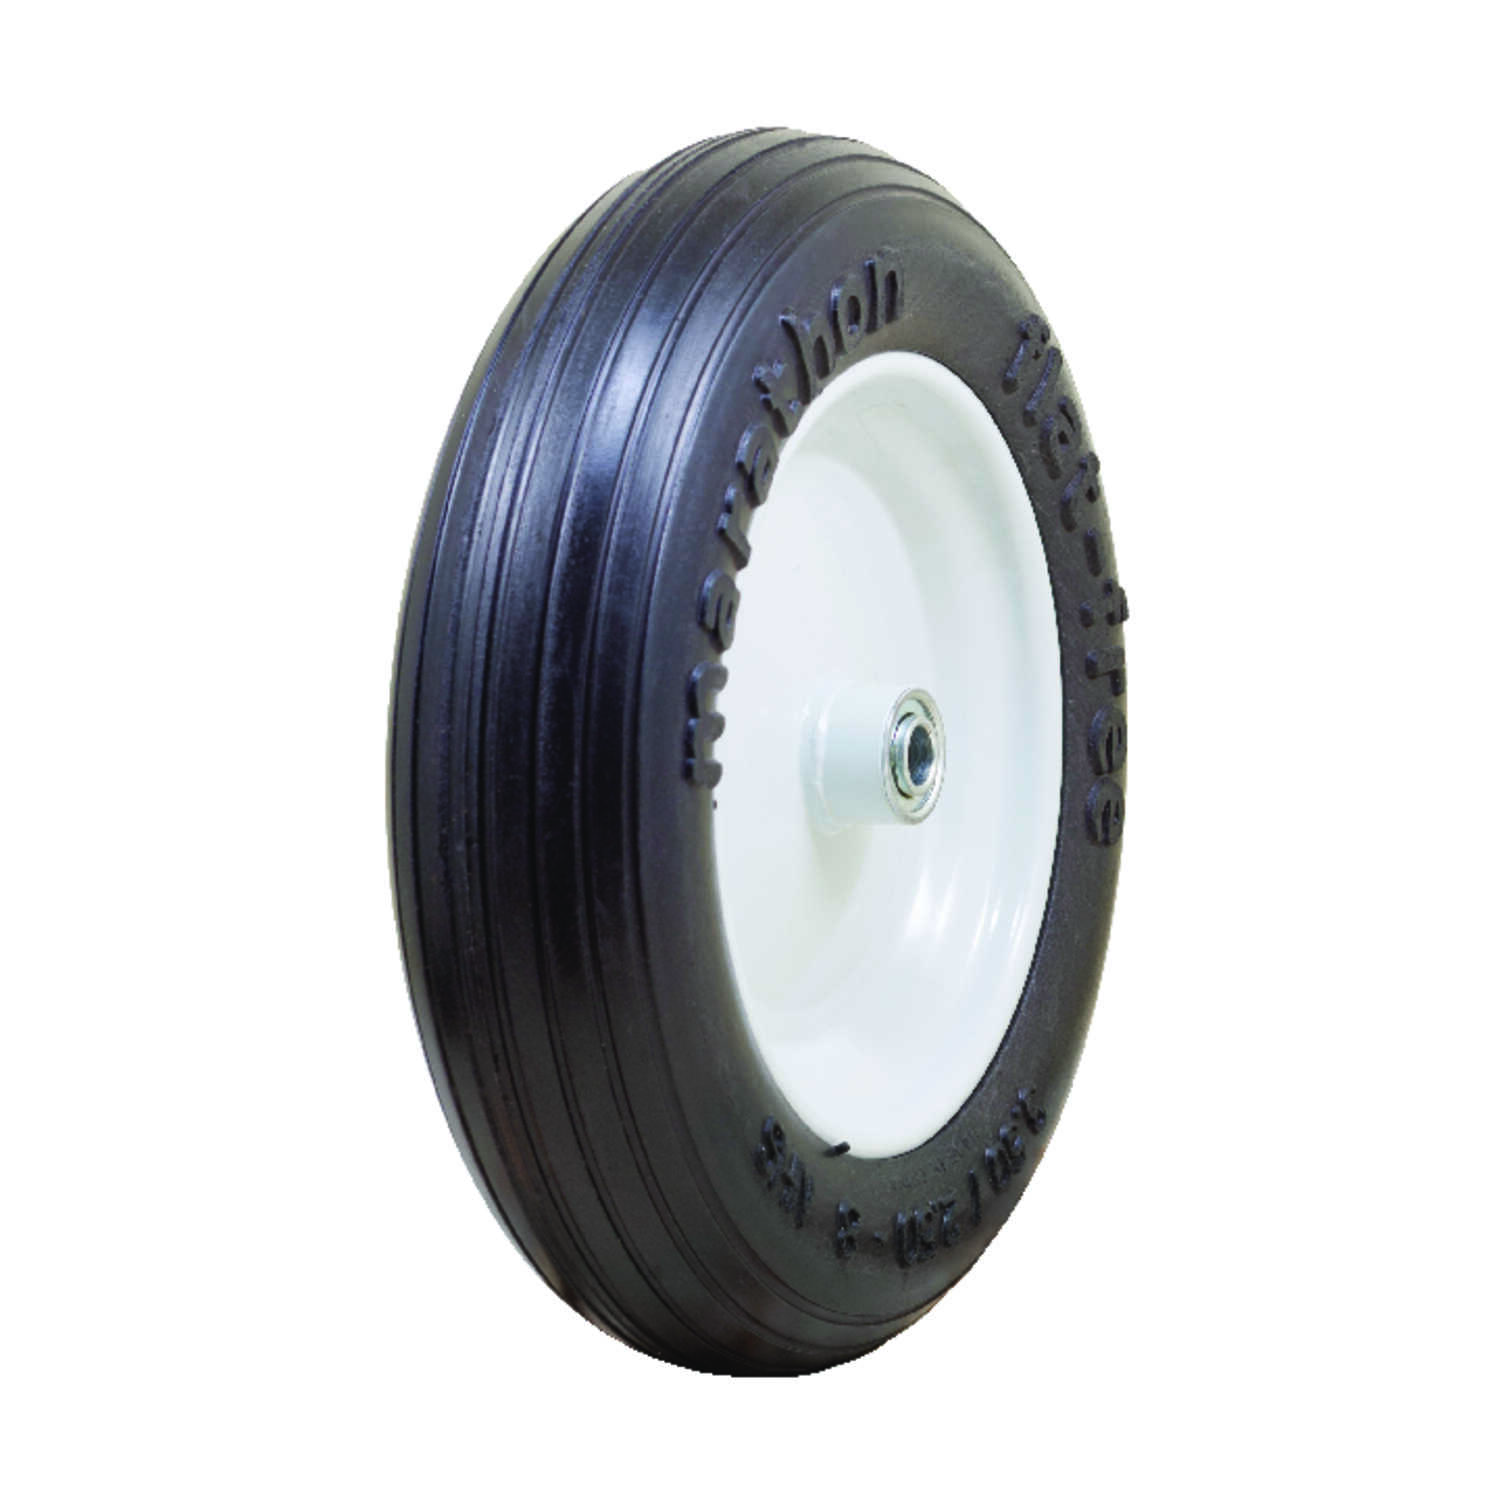 Marathon  300 lb. Butyl Rubber  Wheelbarrow Tire